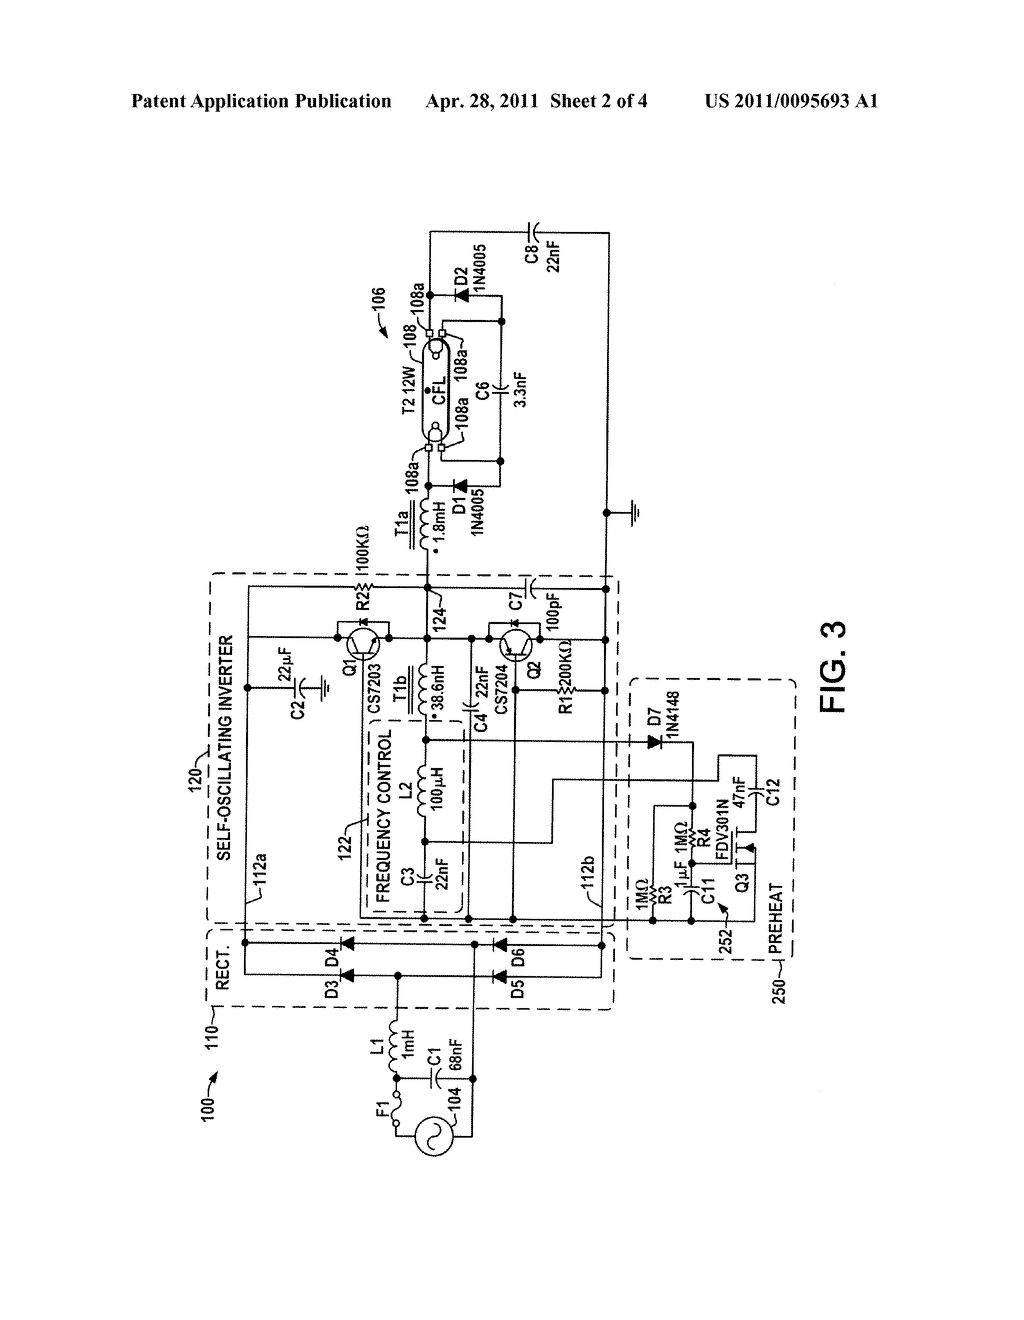 Fluorescent Lamp Ballast With Electronic Preheat Circuit Diagram Electrical Wiring Schematic And Image 03